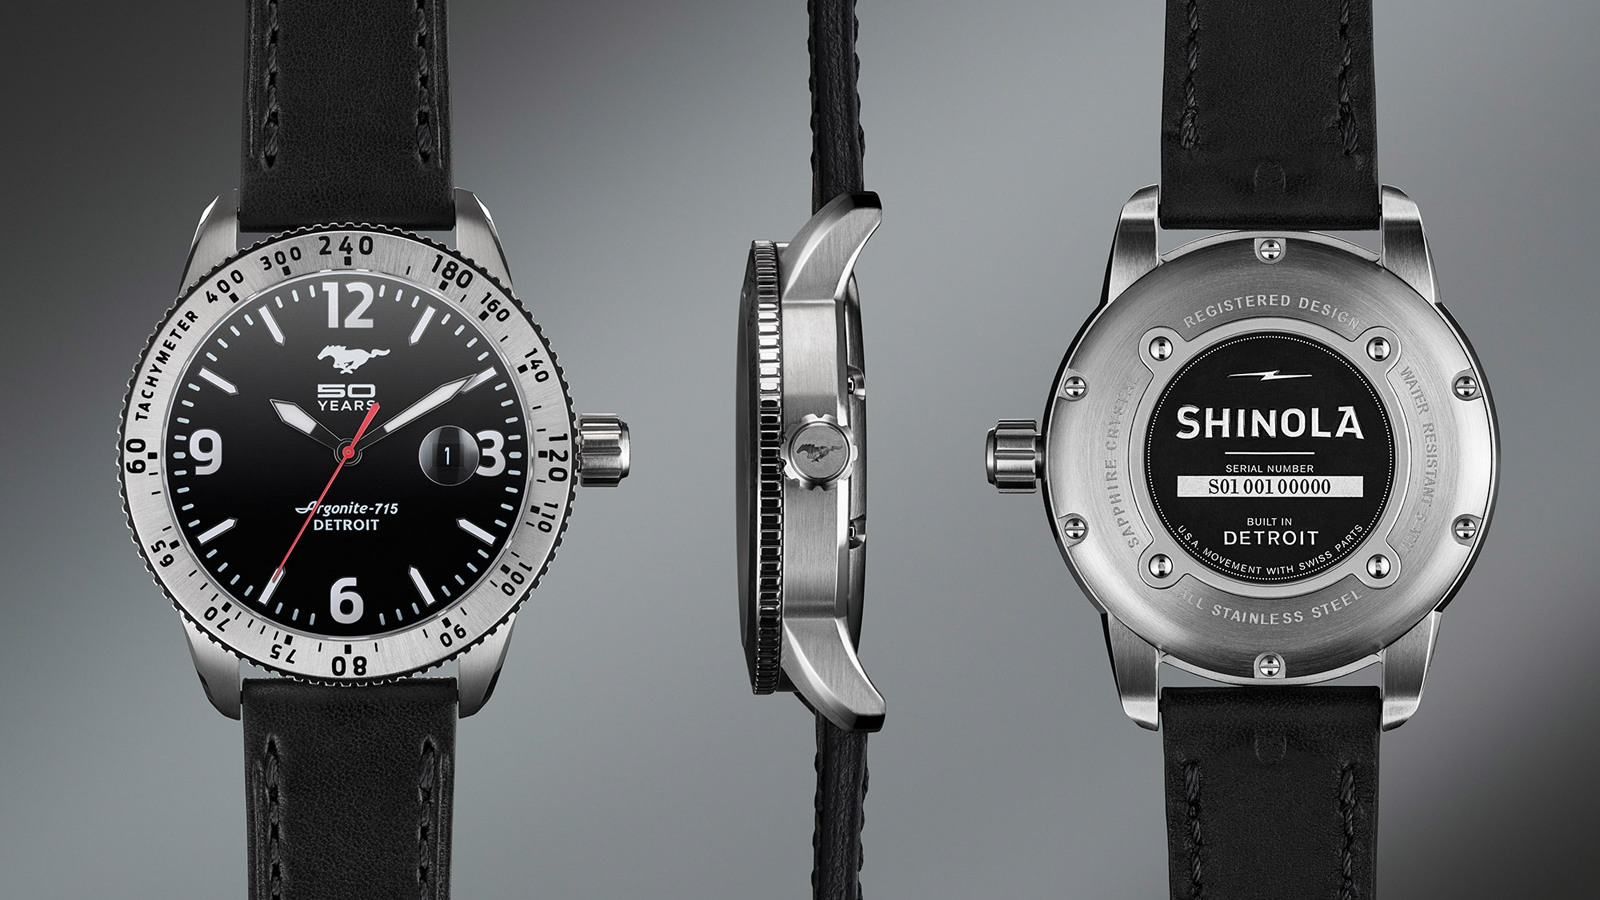 Shinola's Ford Mustang 50th Anniversary limited-edition watch